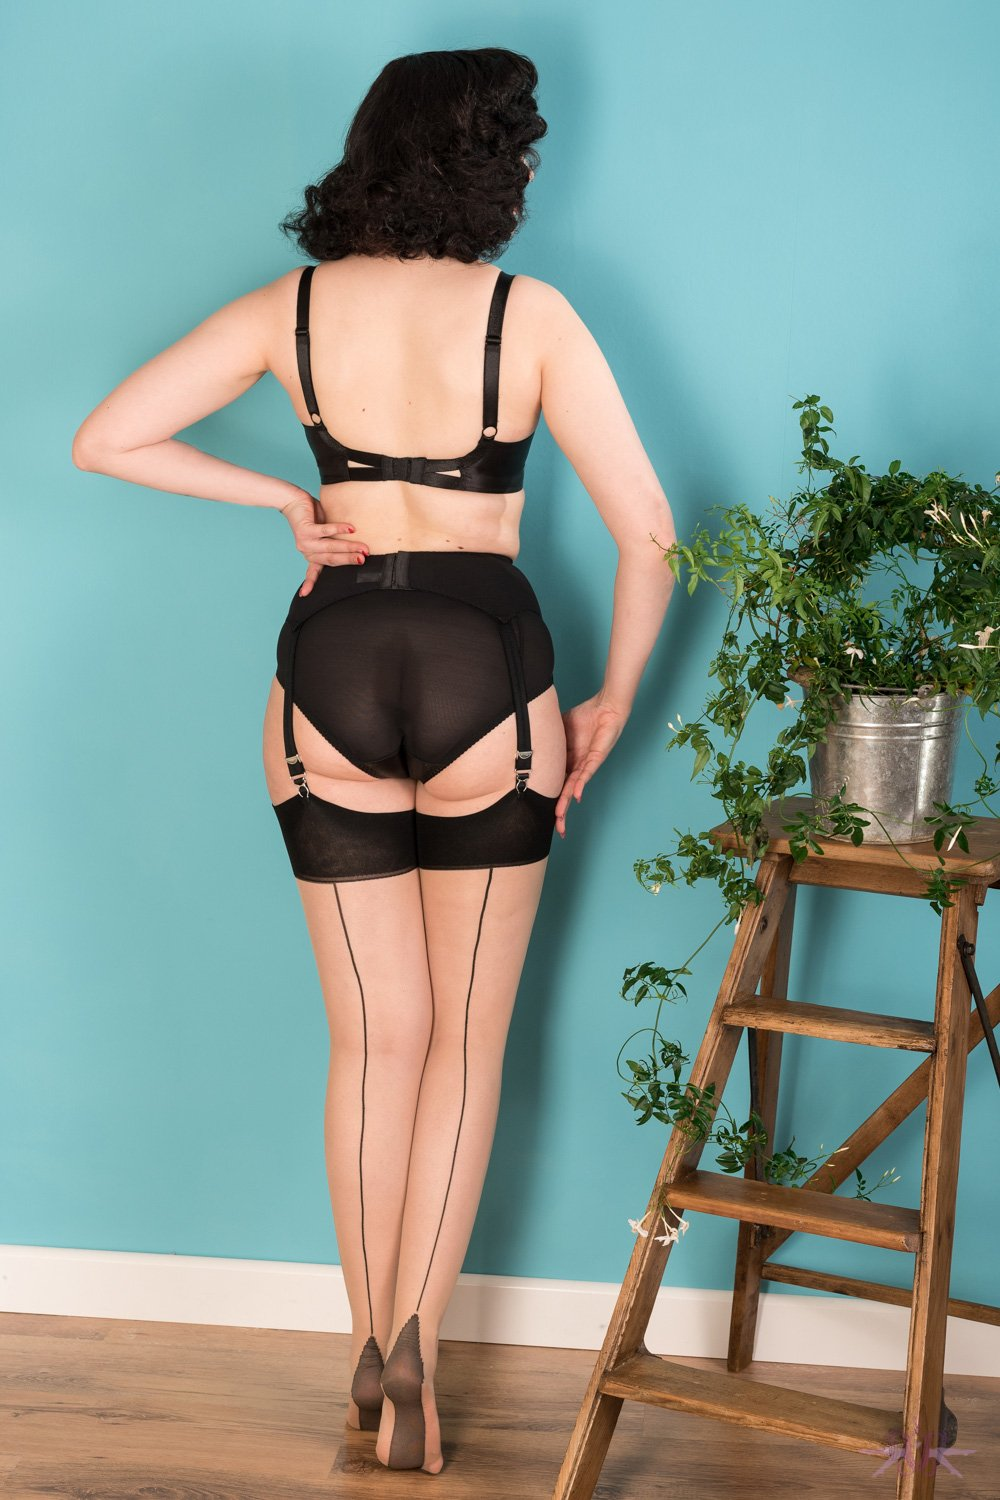 What Katie Did Contrast Champagne/Black Seamed Stockings - The Hosiery Box